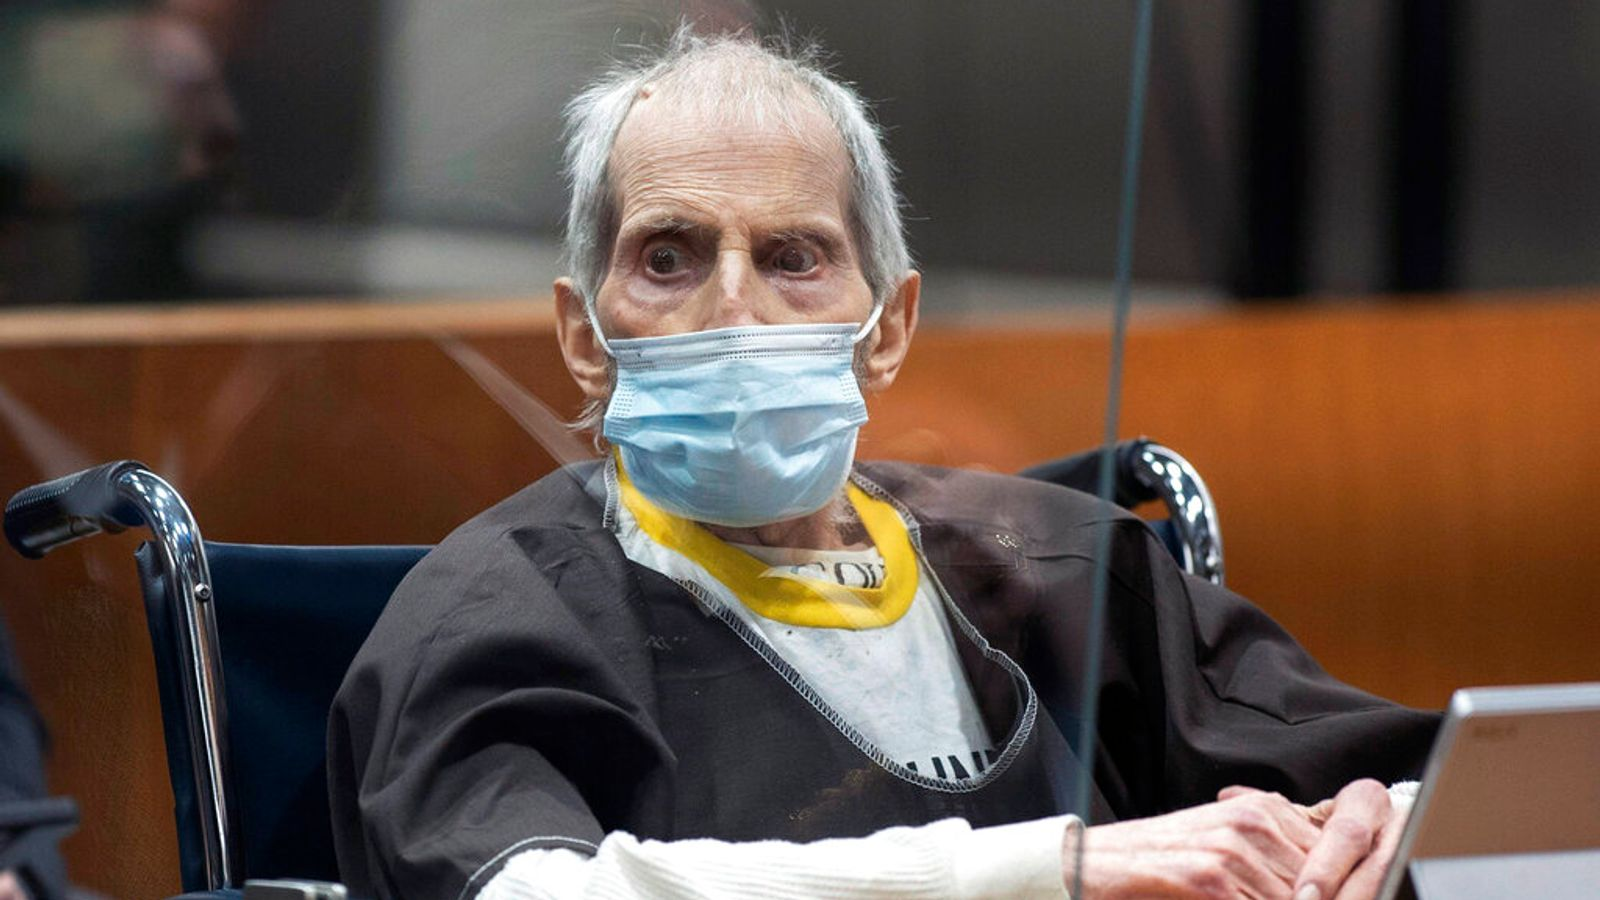 Robert Durst: Millionaire on ventilator with COVID – days after being sentenced to life in prison for murder